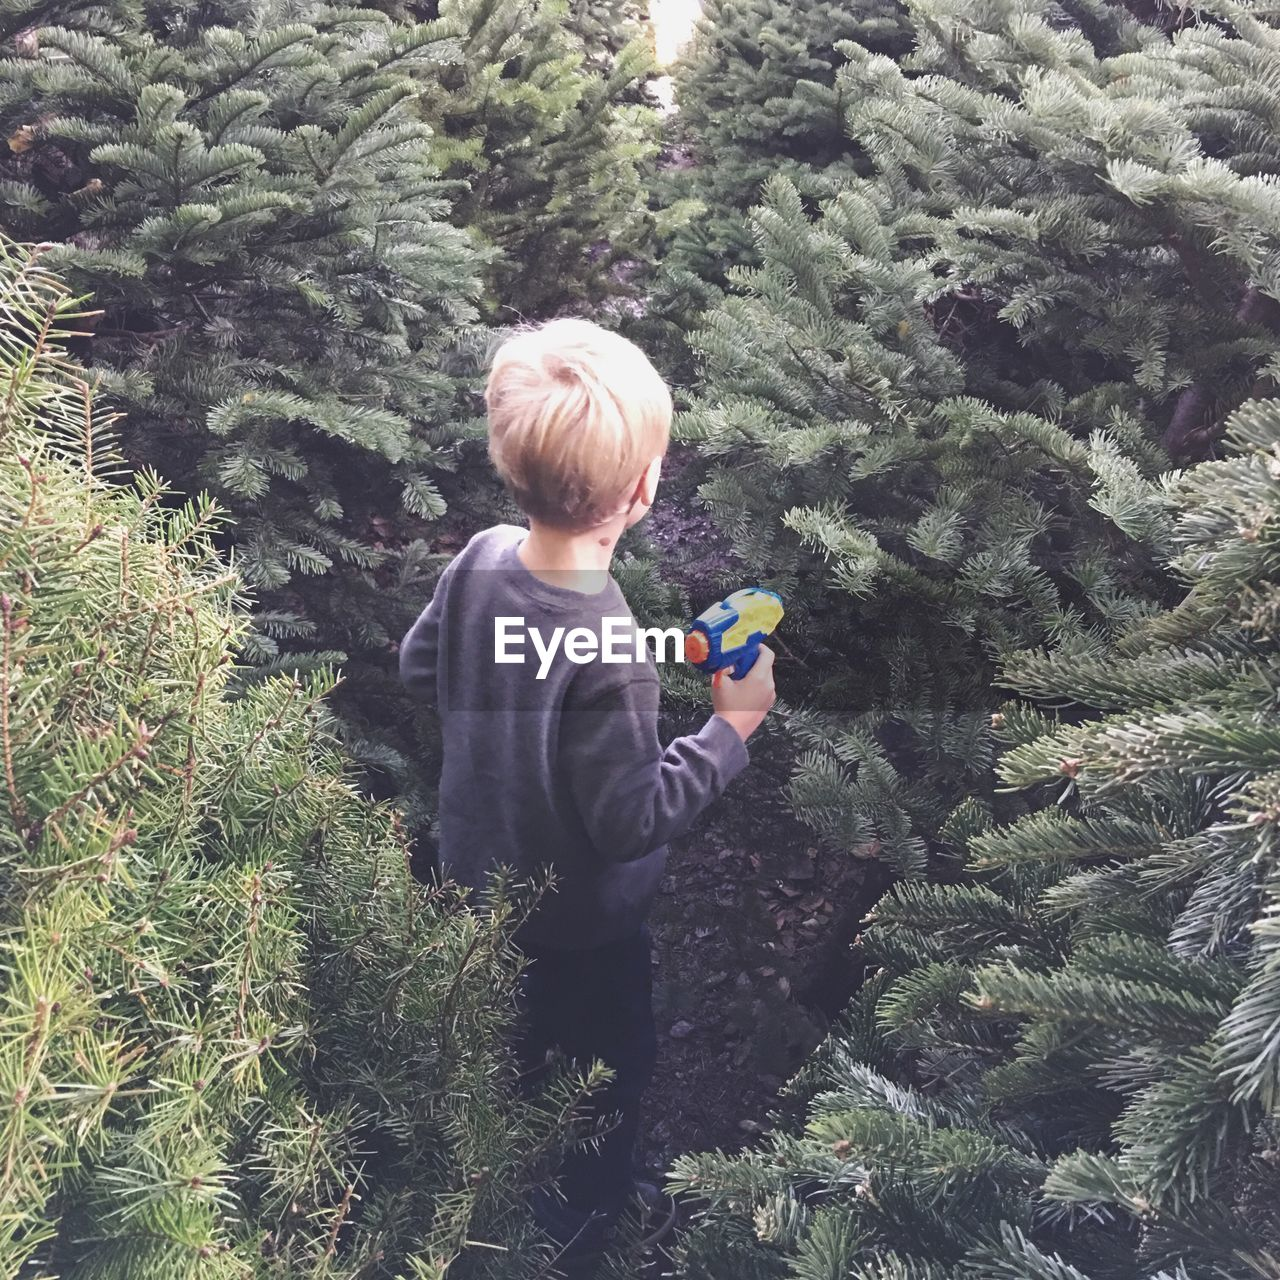 High Angle View Of Boy Holding Water Pistol Amidst Pine Trees